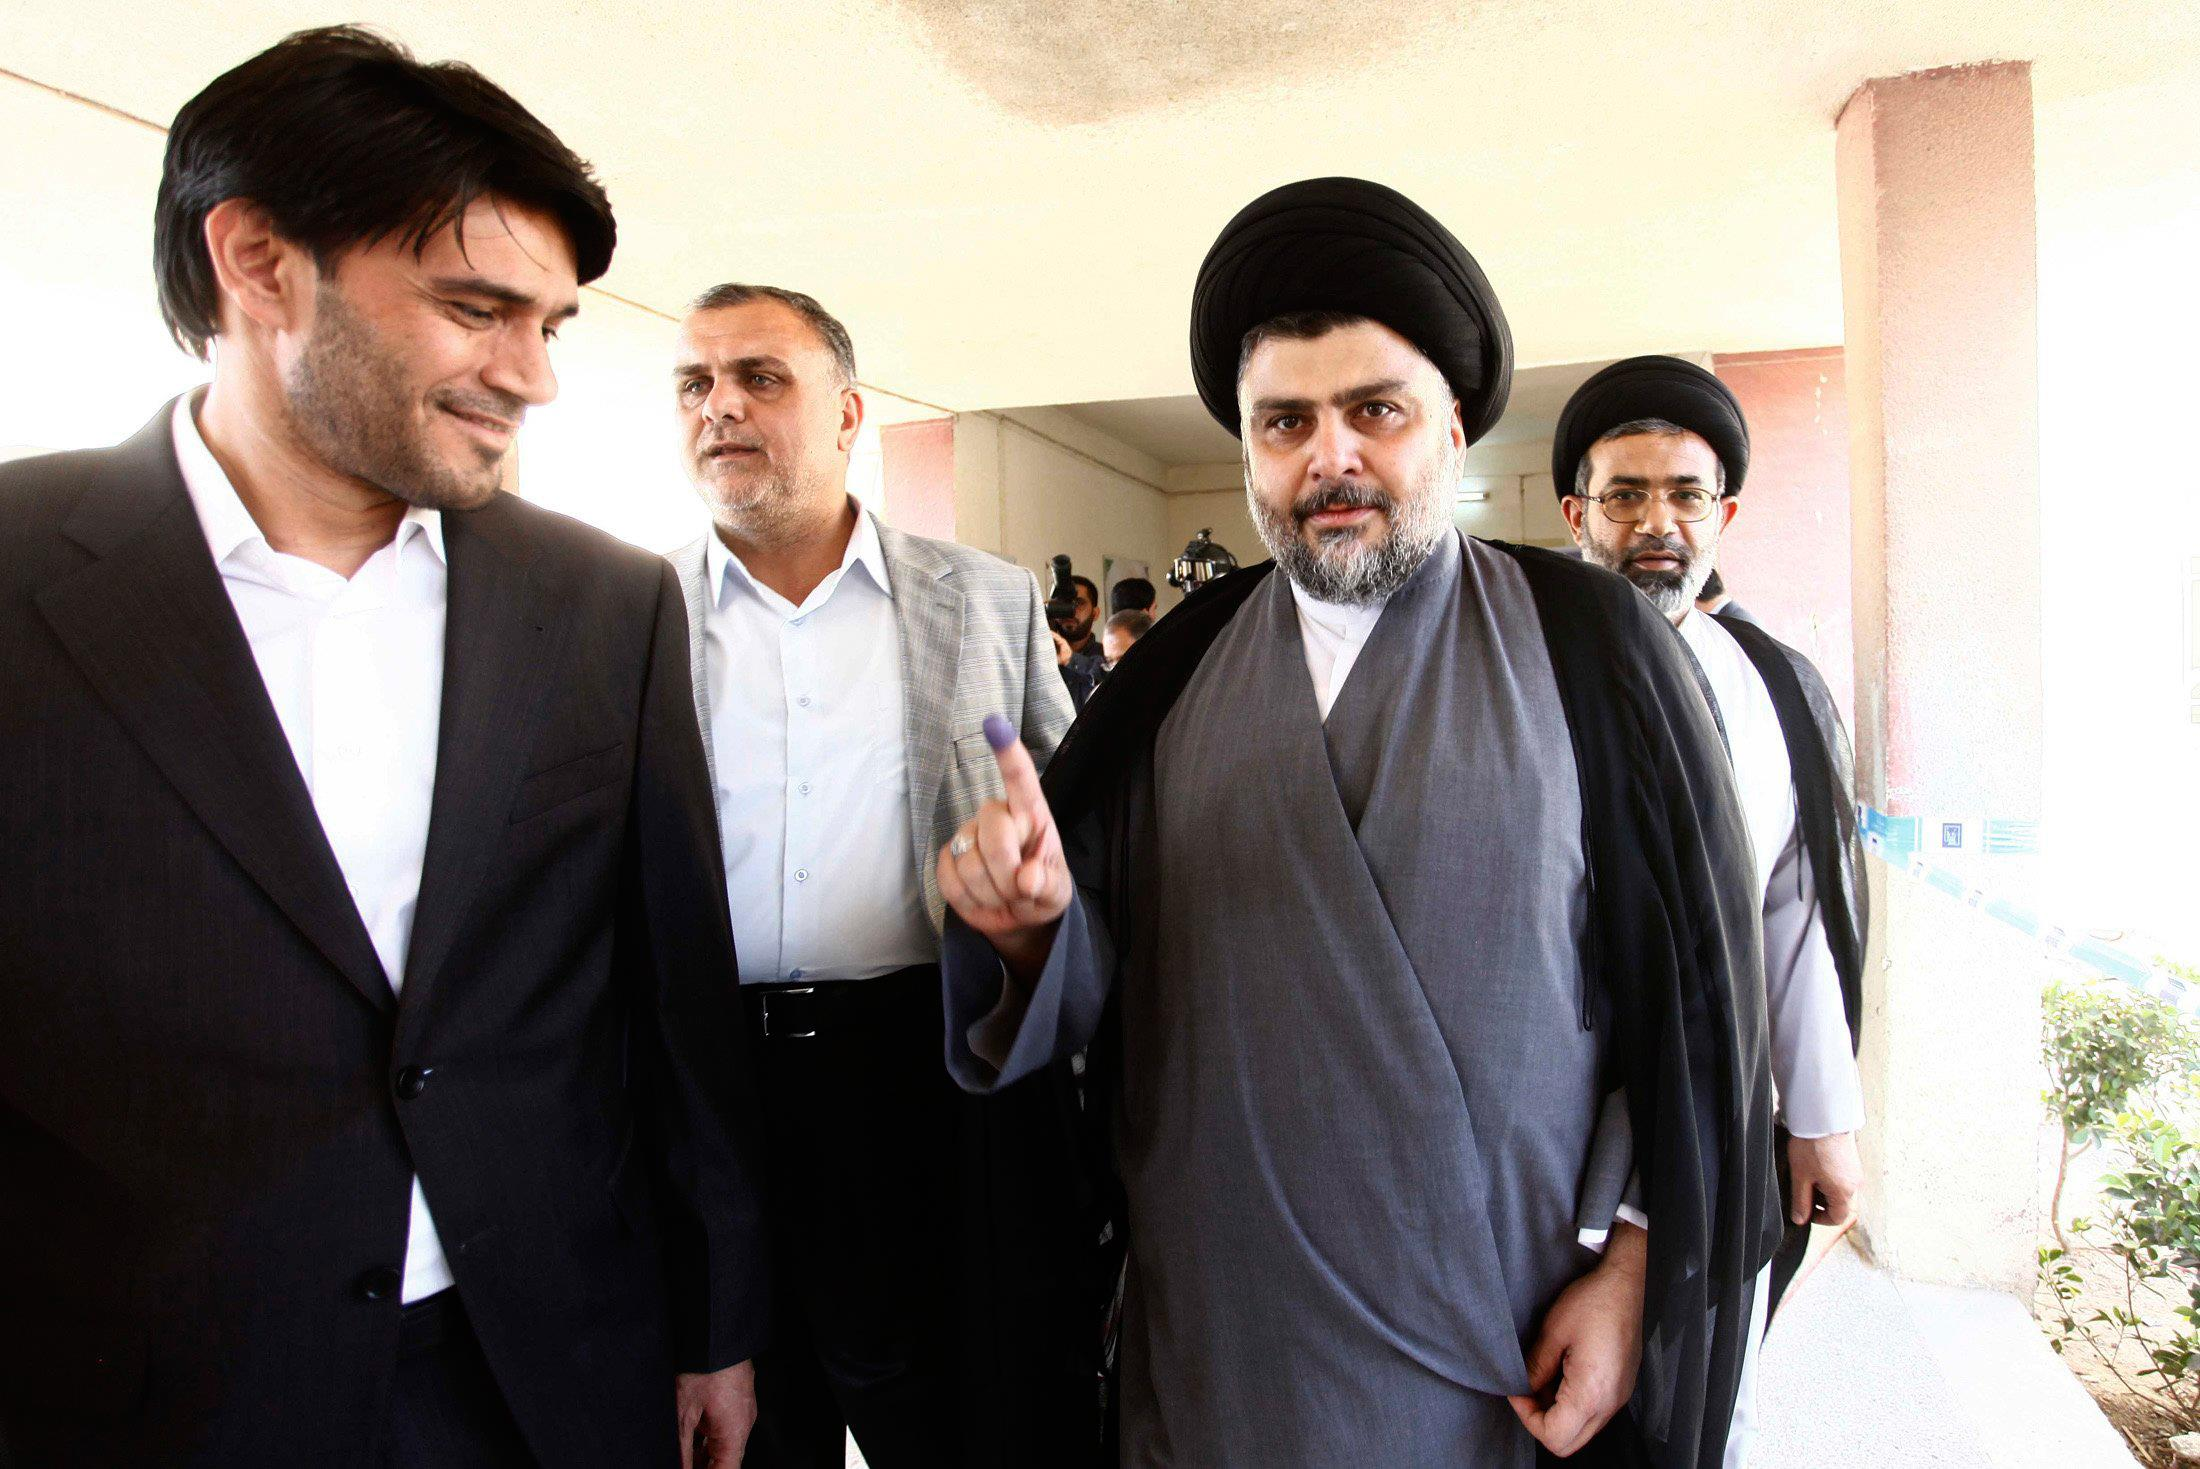 Image: Shiite cleric Muqtada al-Sadr shows his ink-stained finger after voting in parliamentary election at a polling station in Najaf